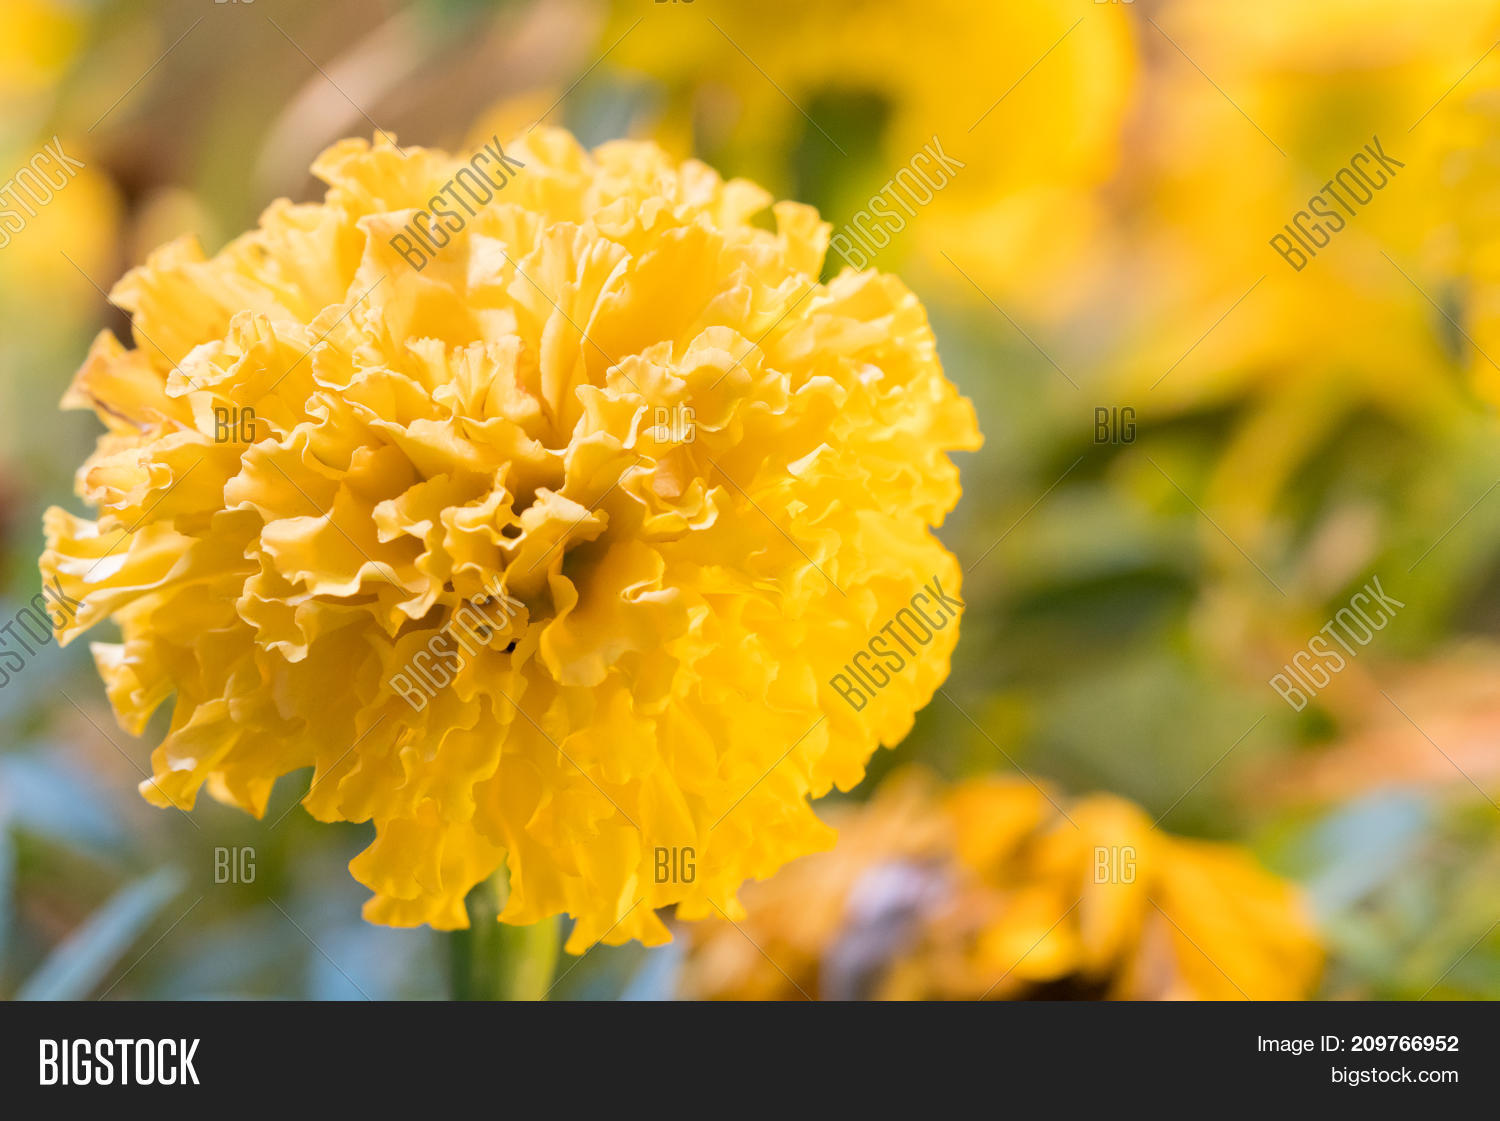 Real Marigold Flowers Image Photo Free Trial Bigstock